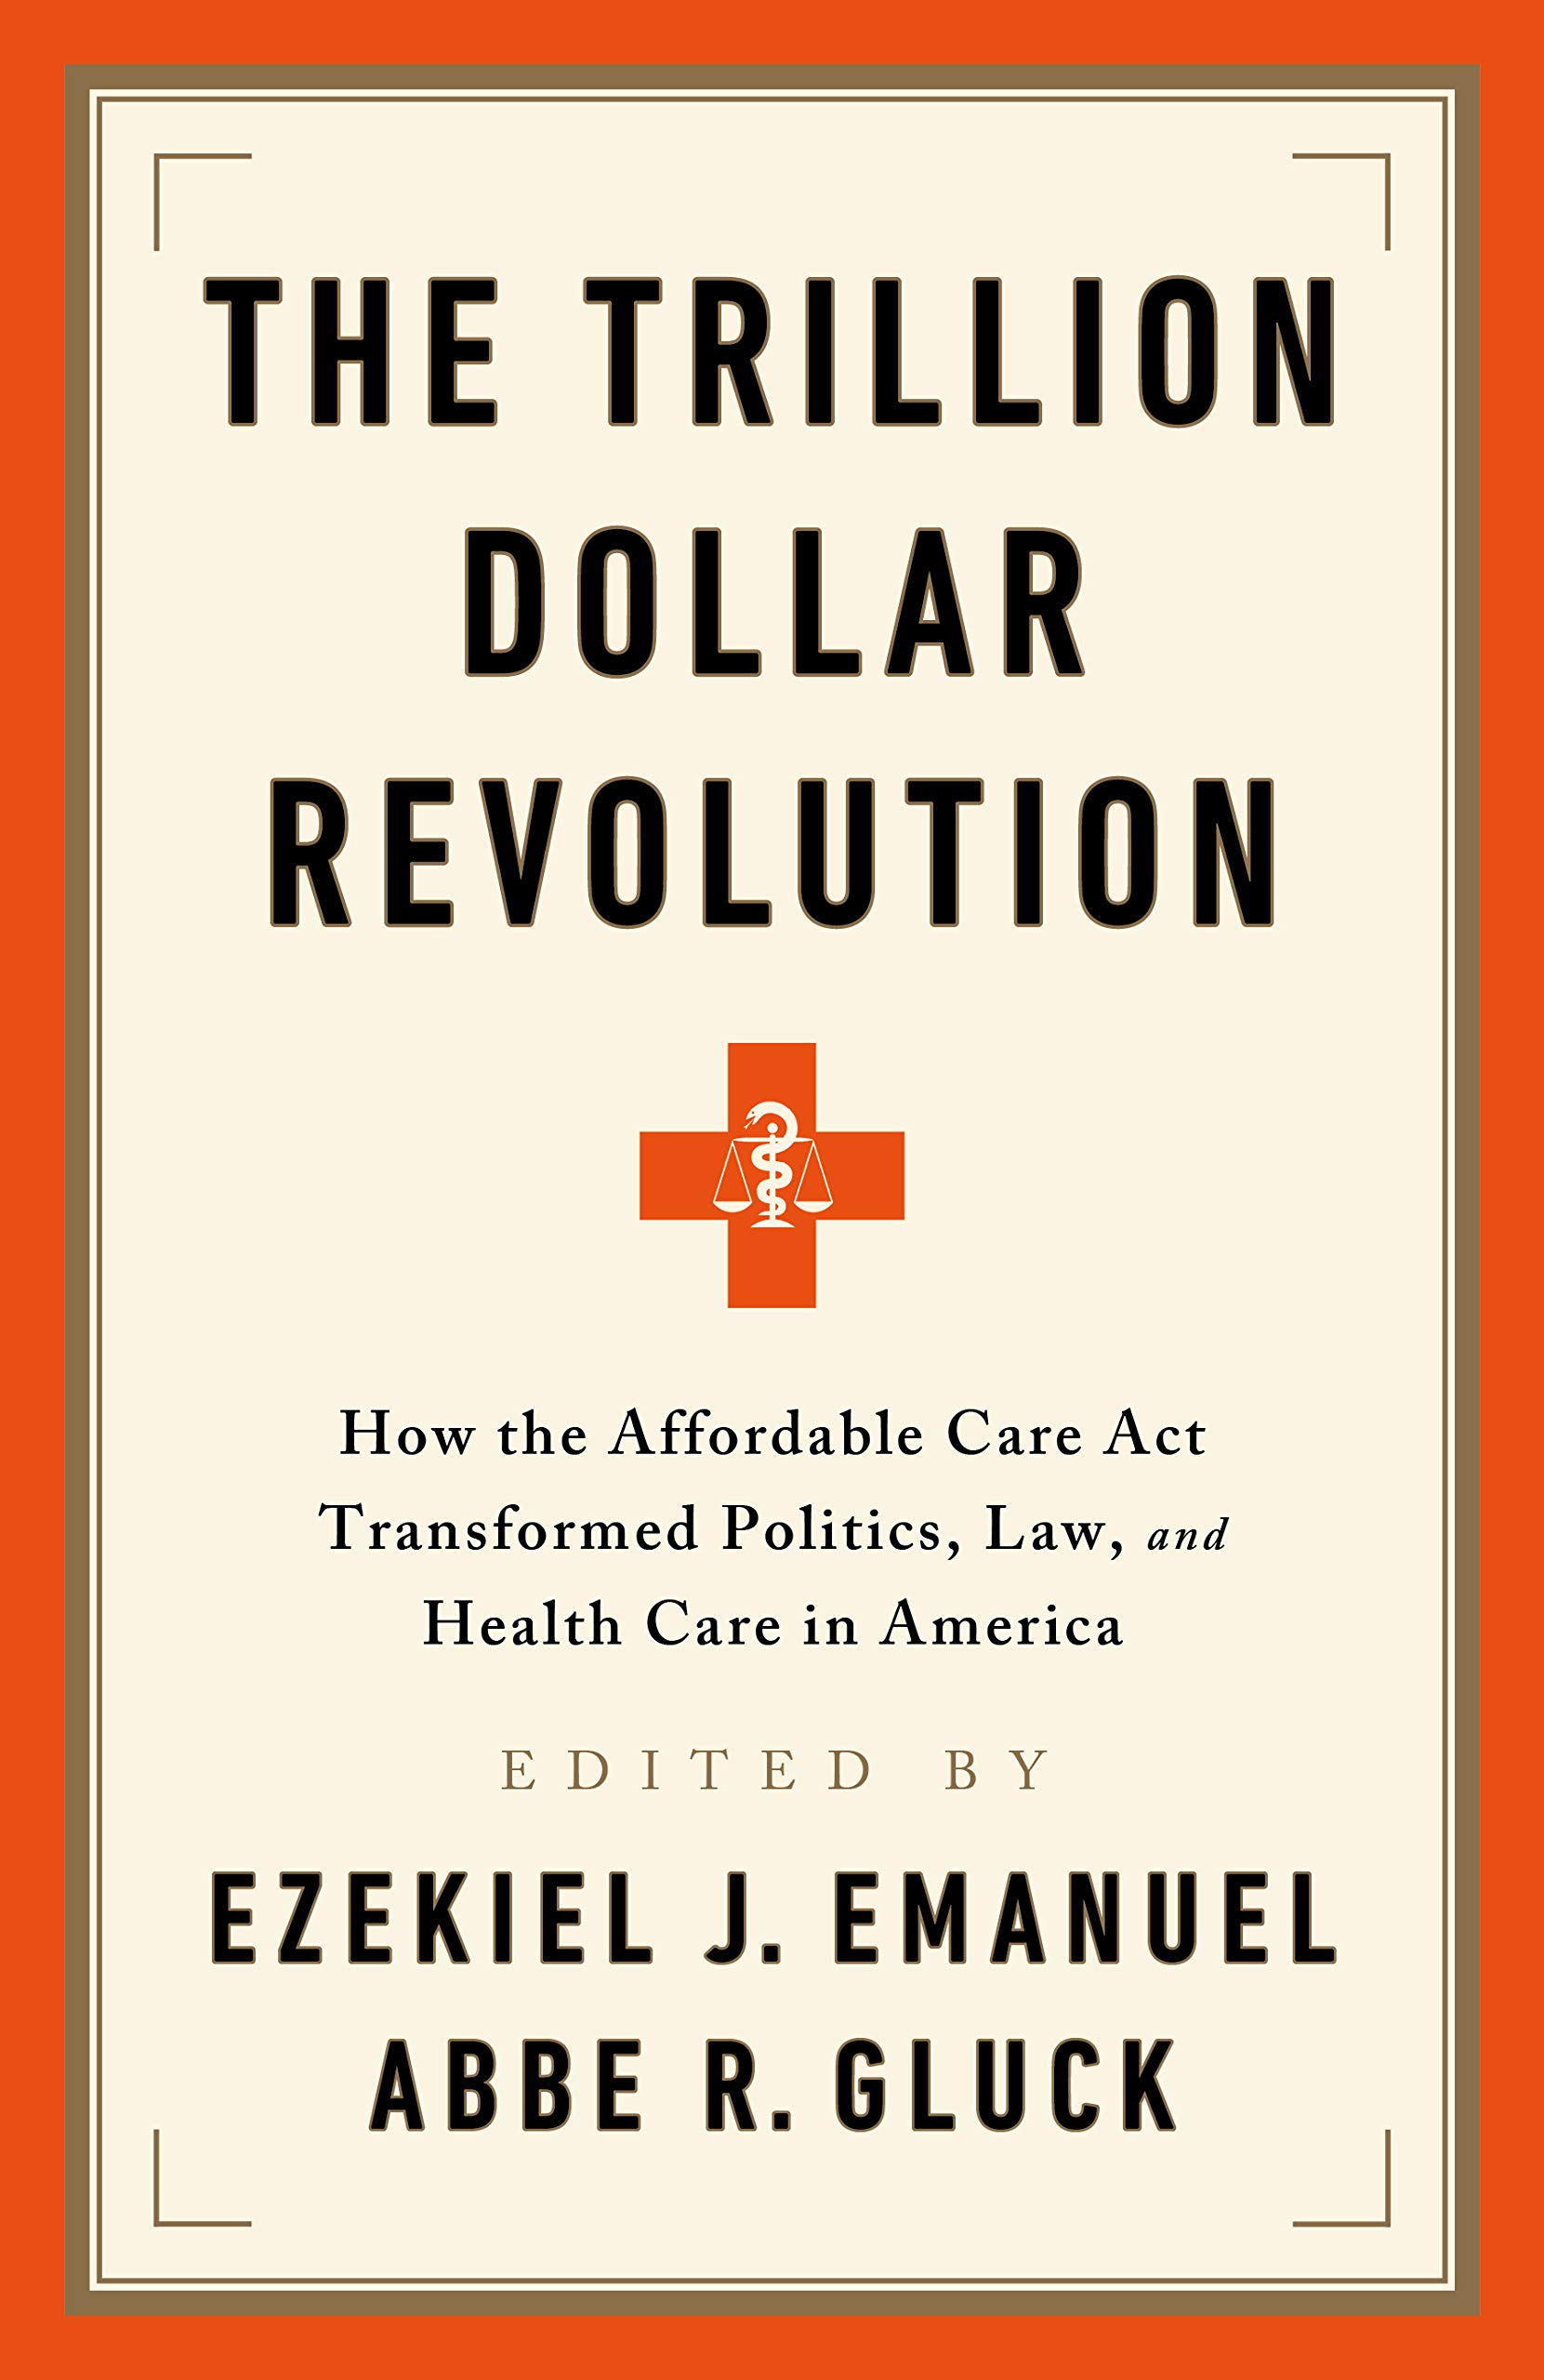 Image OfThe Trillion Dollar Revolution: How The Affordable Care Act Transformed Politics, Law, And Health Care In America